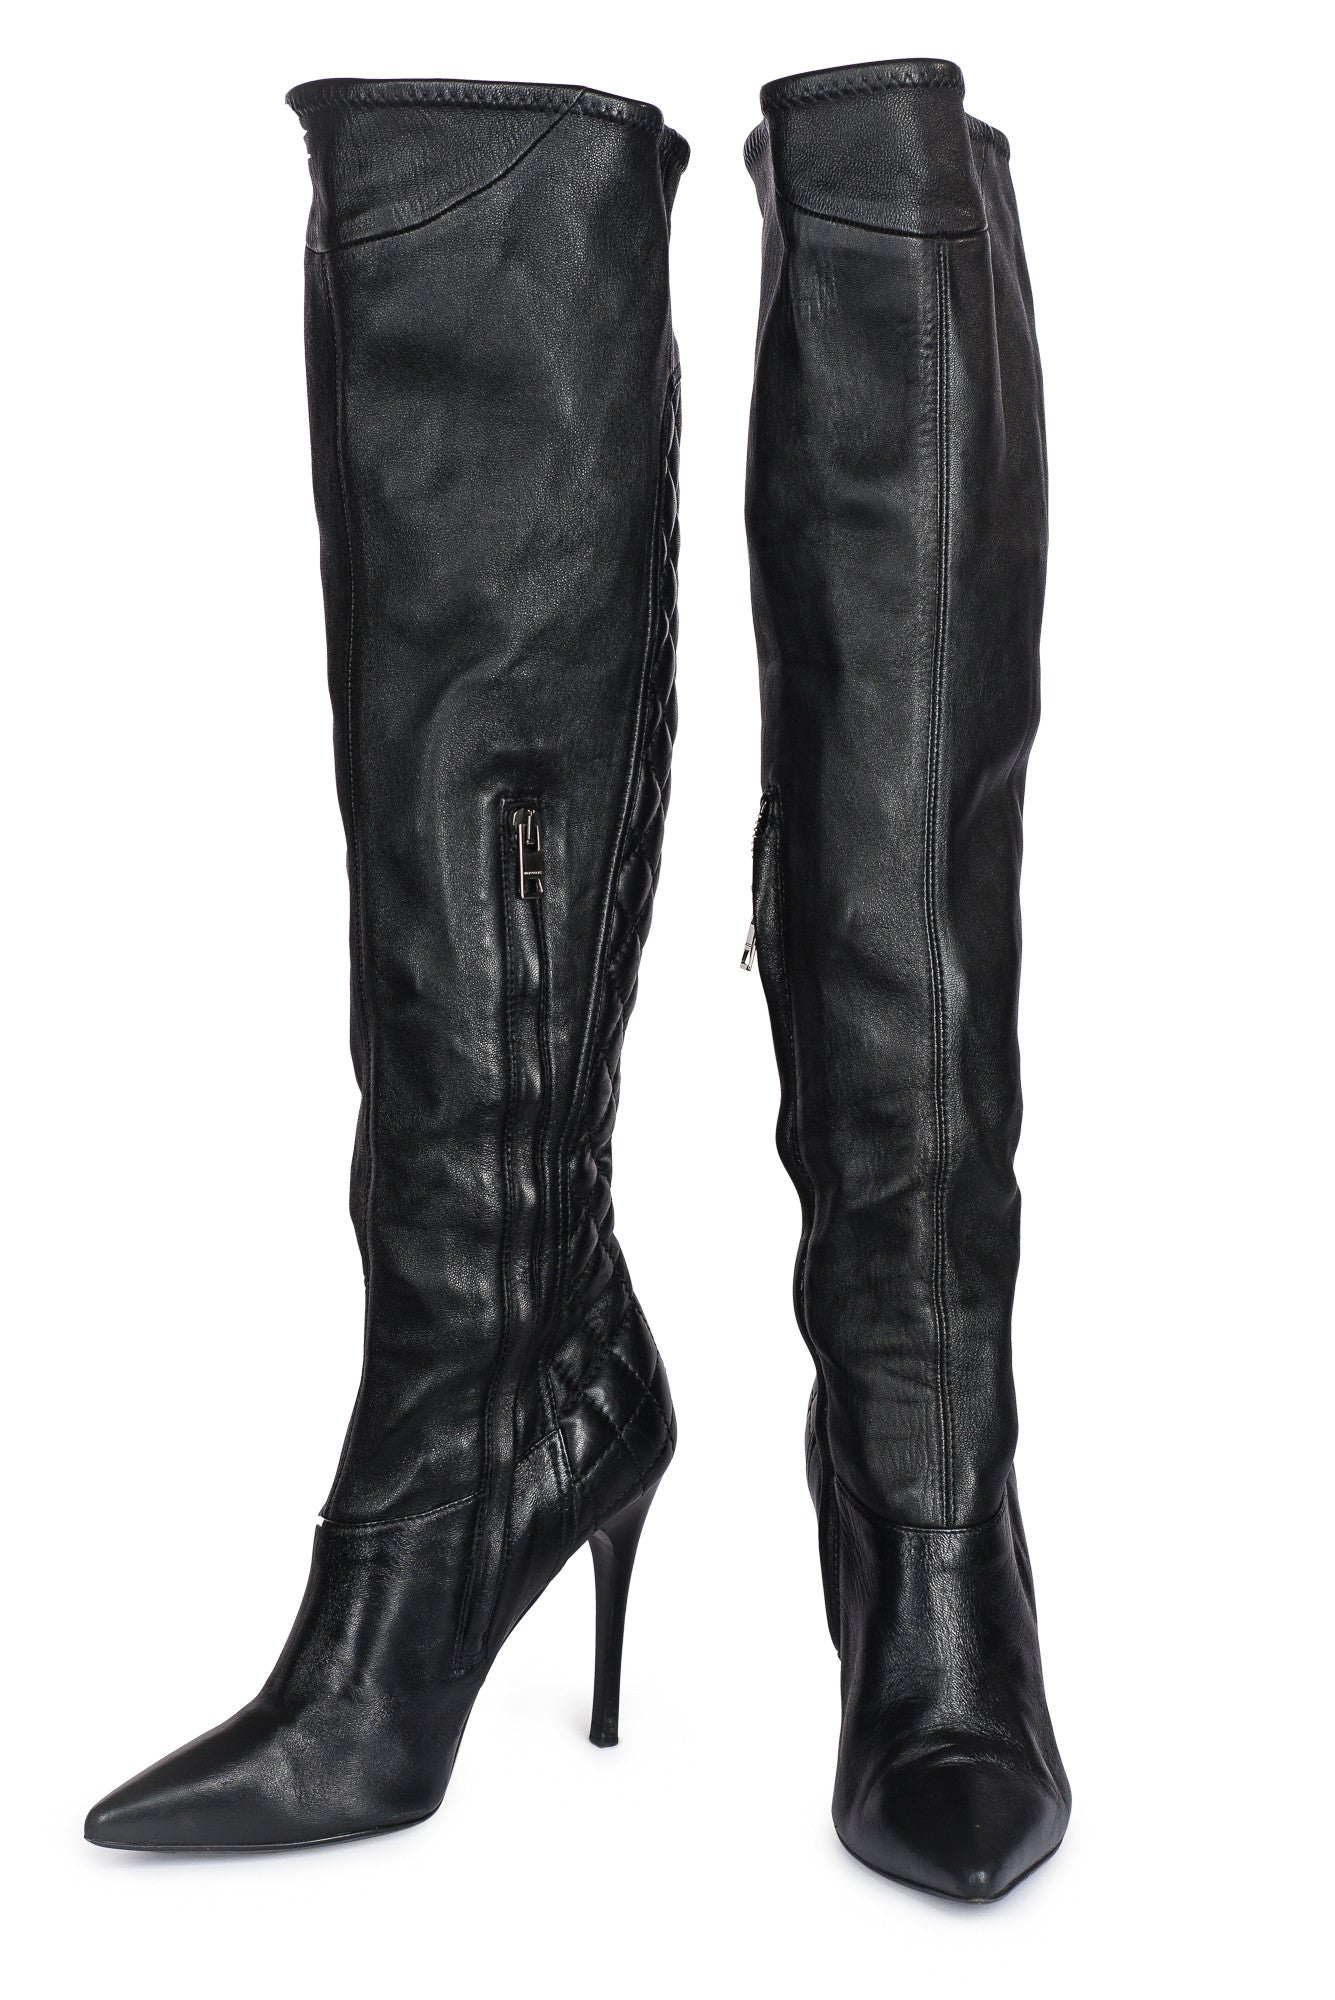 a1b0518fa30 BURBERRY Over The Knee Leather Boots – FashionXC